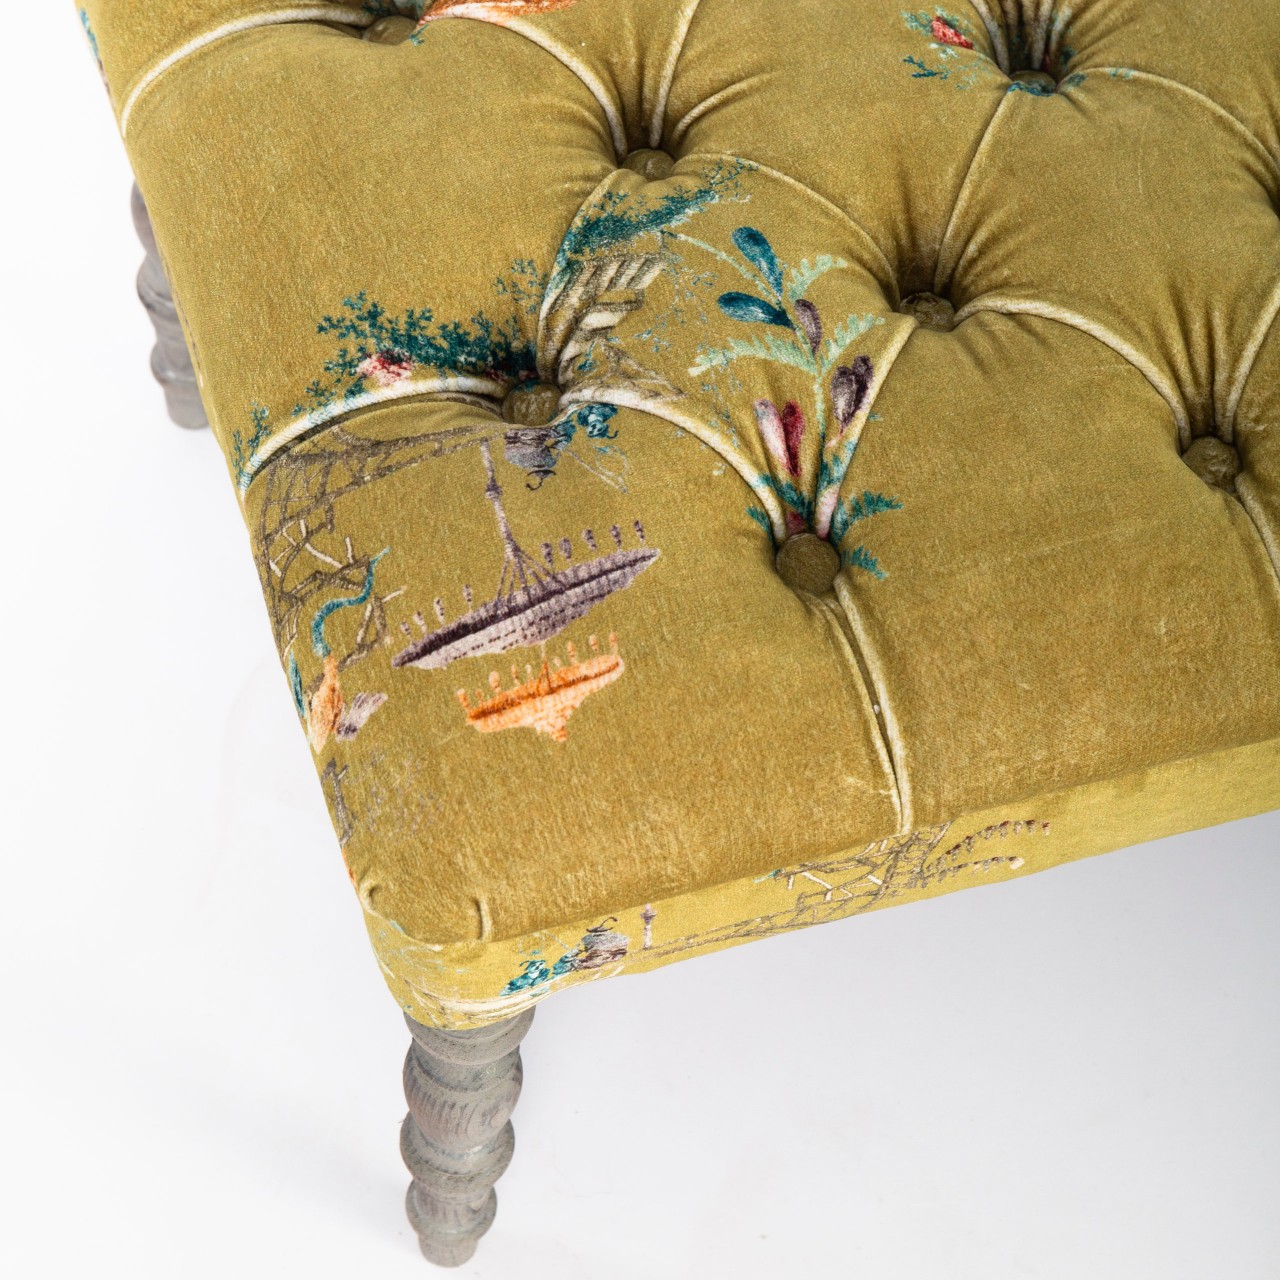 EDWARD Ottoman Tufted Bench - CHINOISERIE Velvet